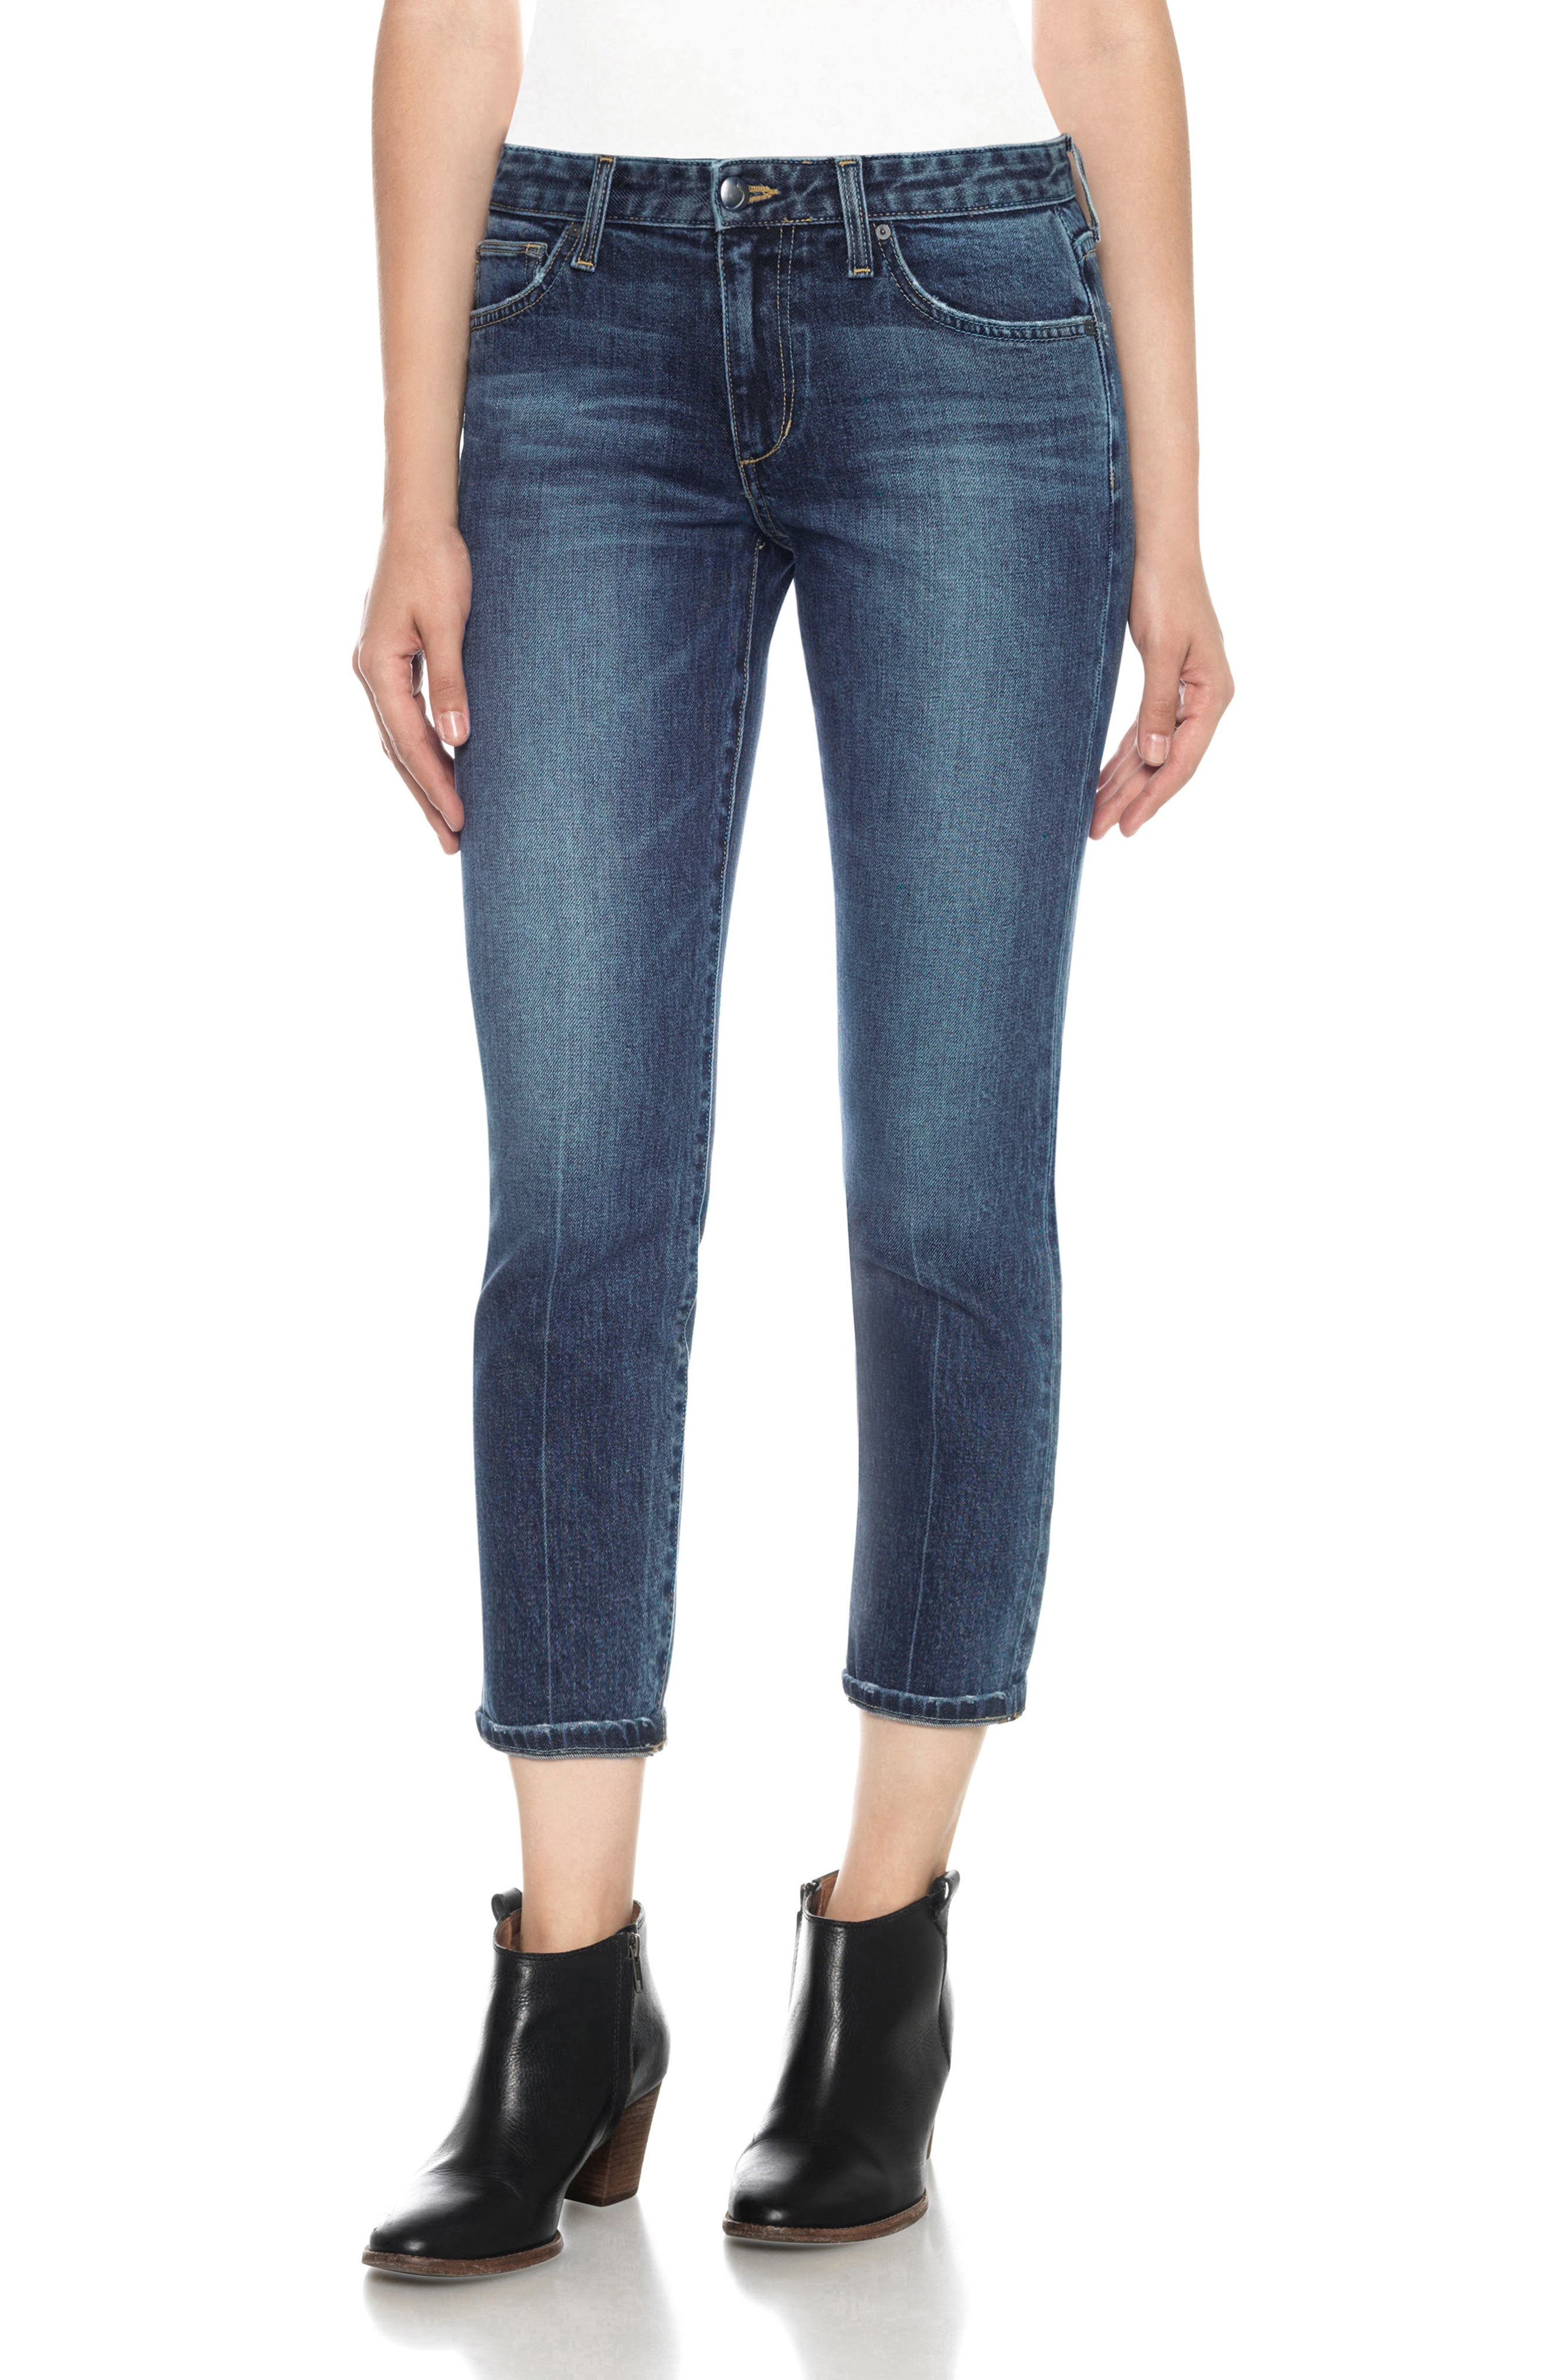 Smith Ankle Skinny Jeans,                             Main thumbnail 1, color,                             404